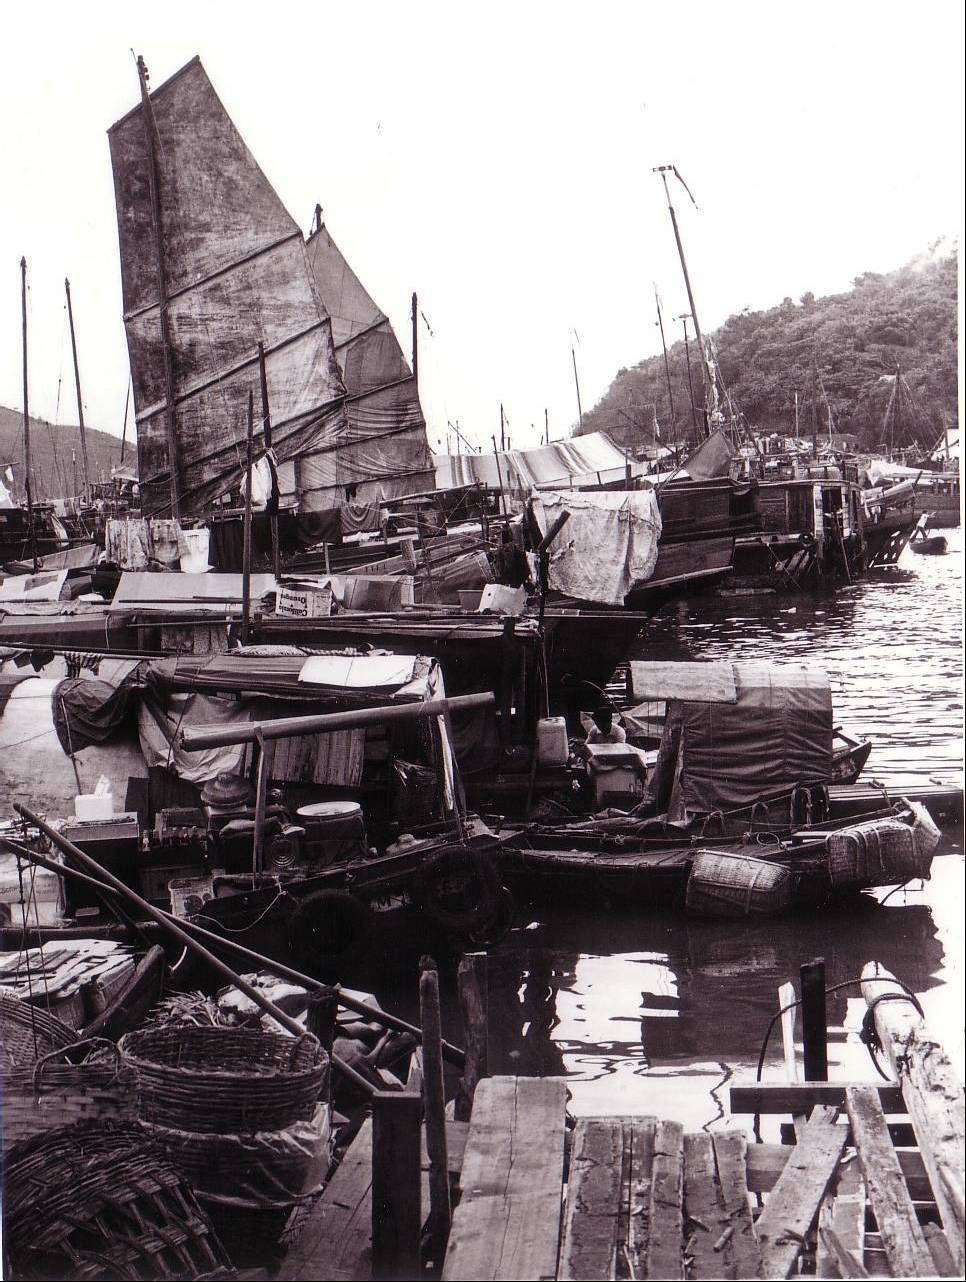 Hong Kong's backyard, where the fishing boats tie up for repairs and restocking.